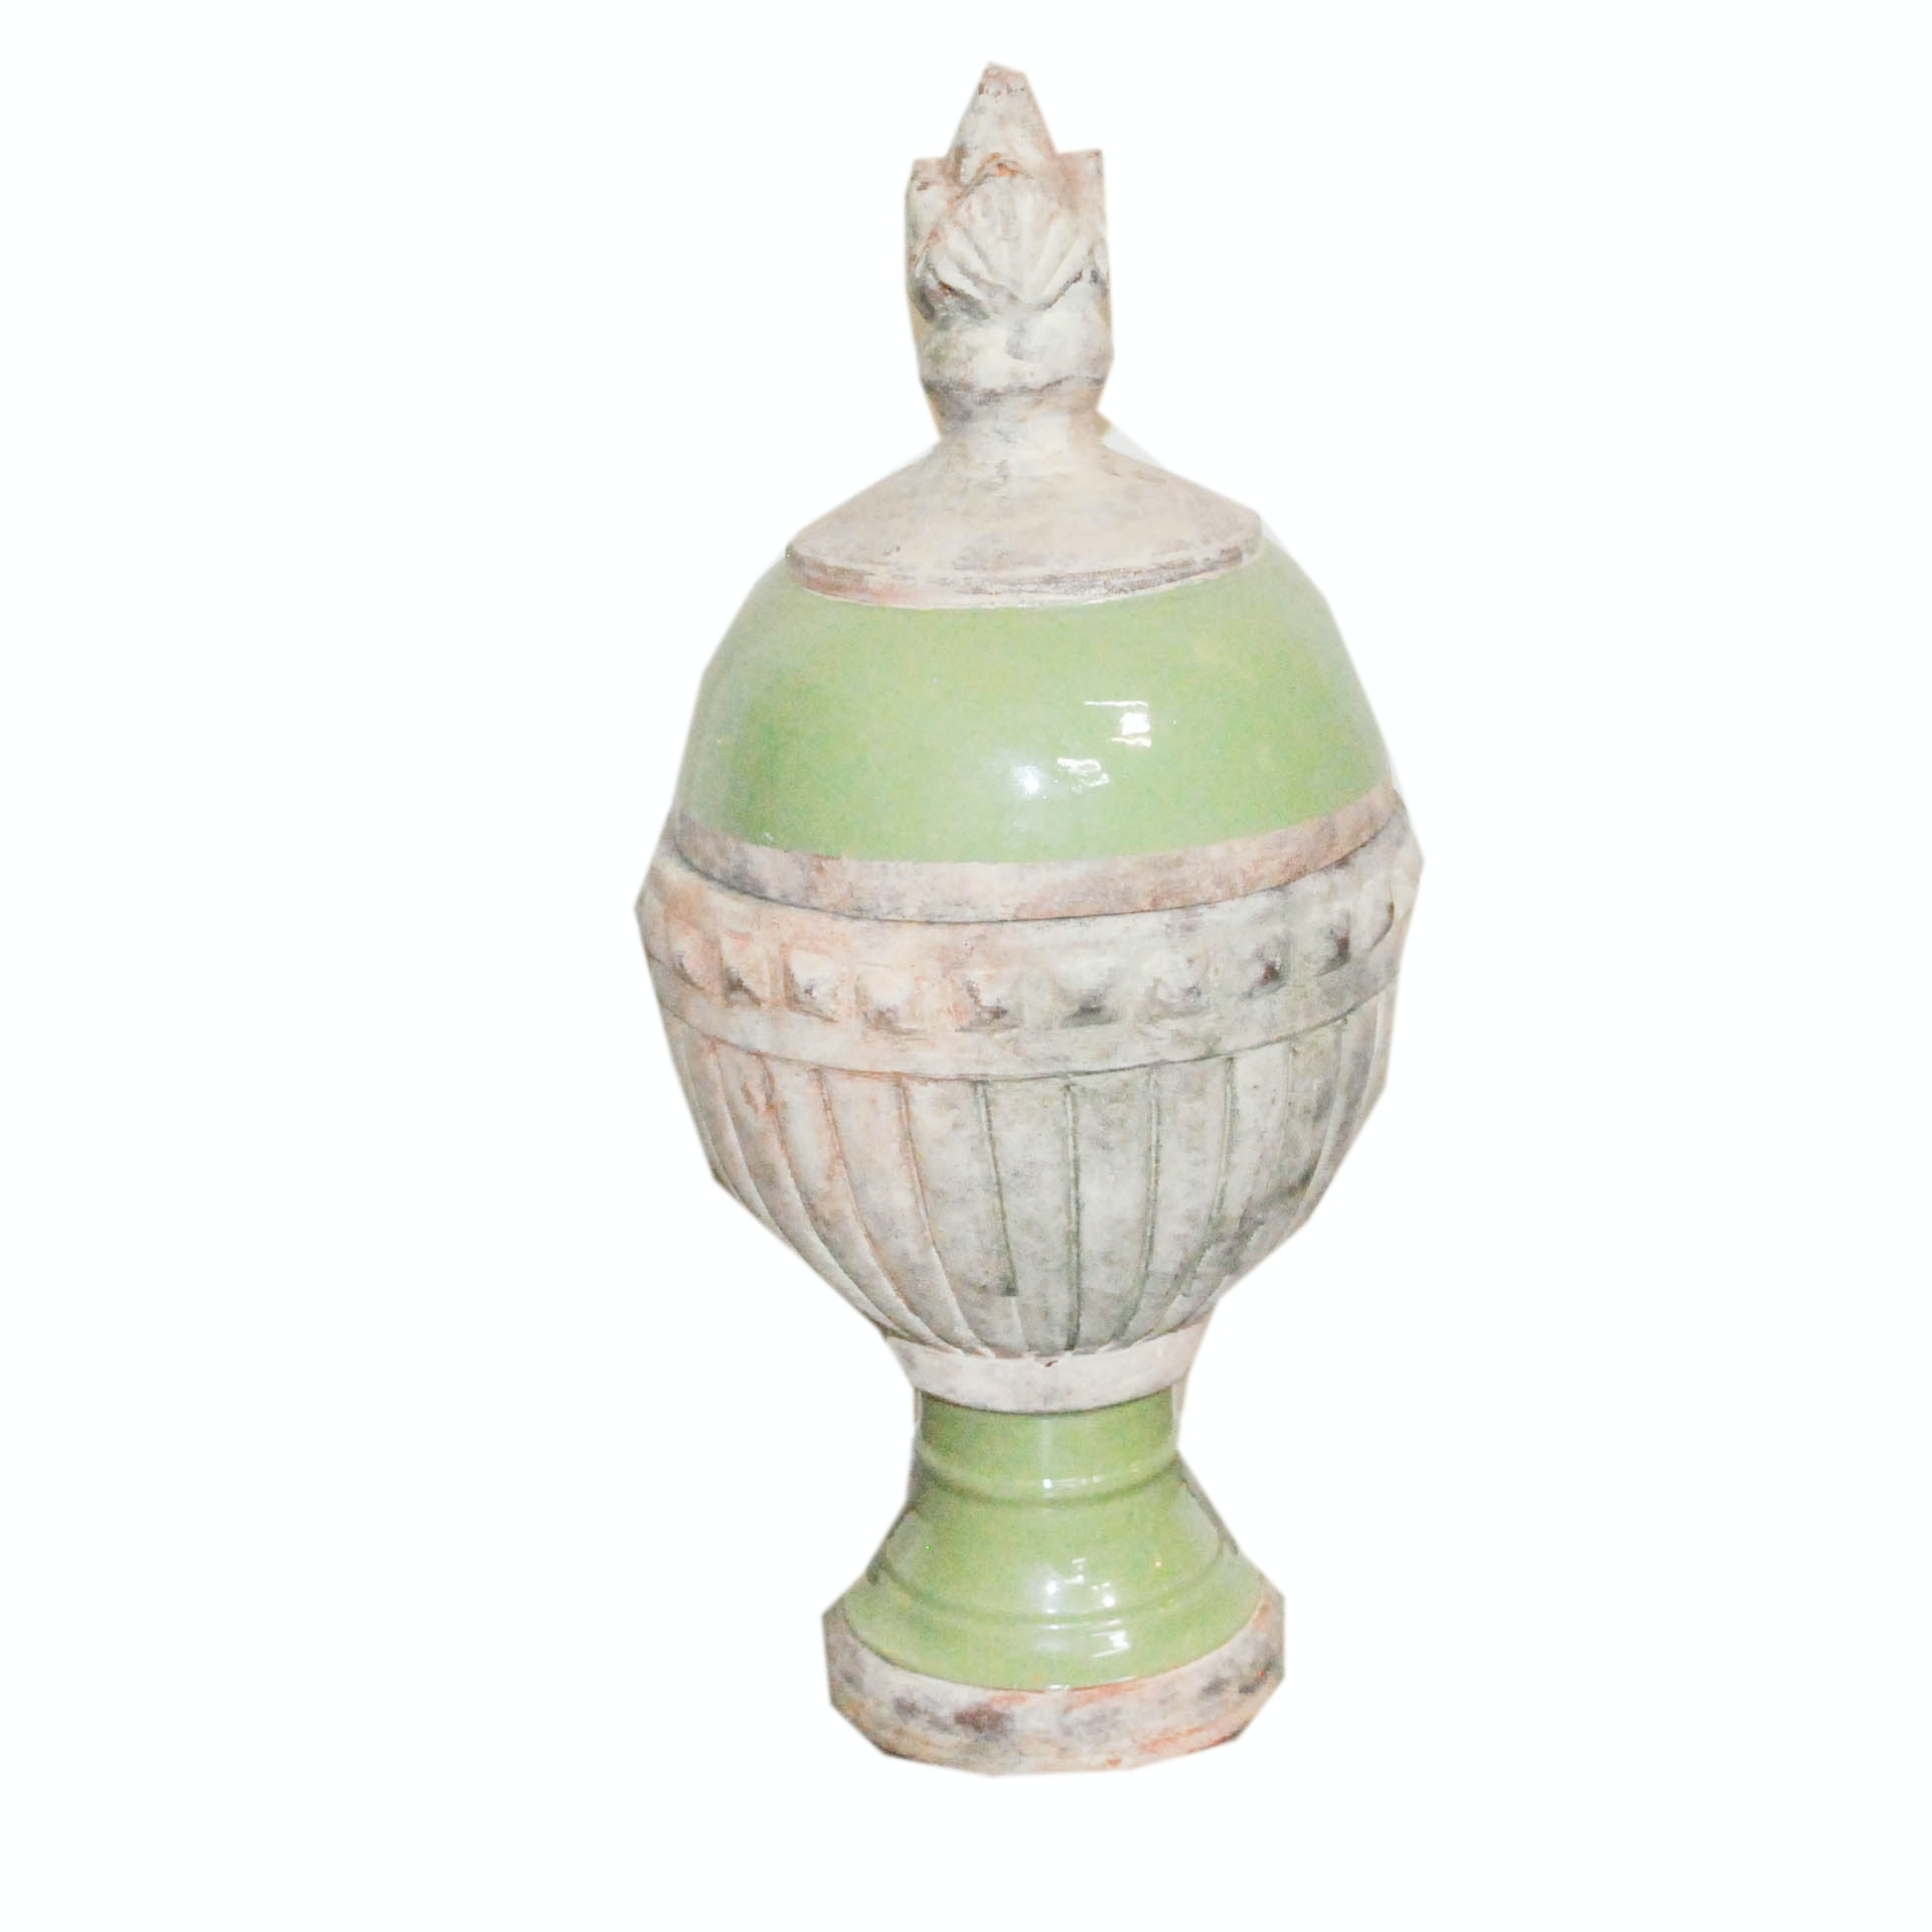 Decorative Ceramic Lidded Urn